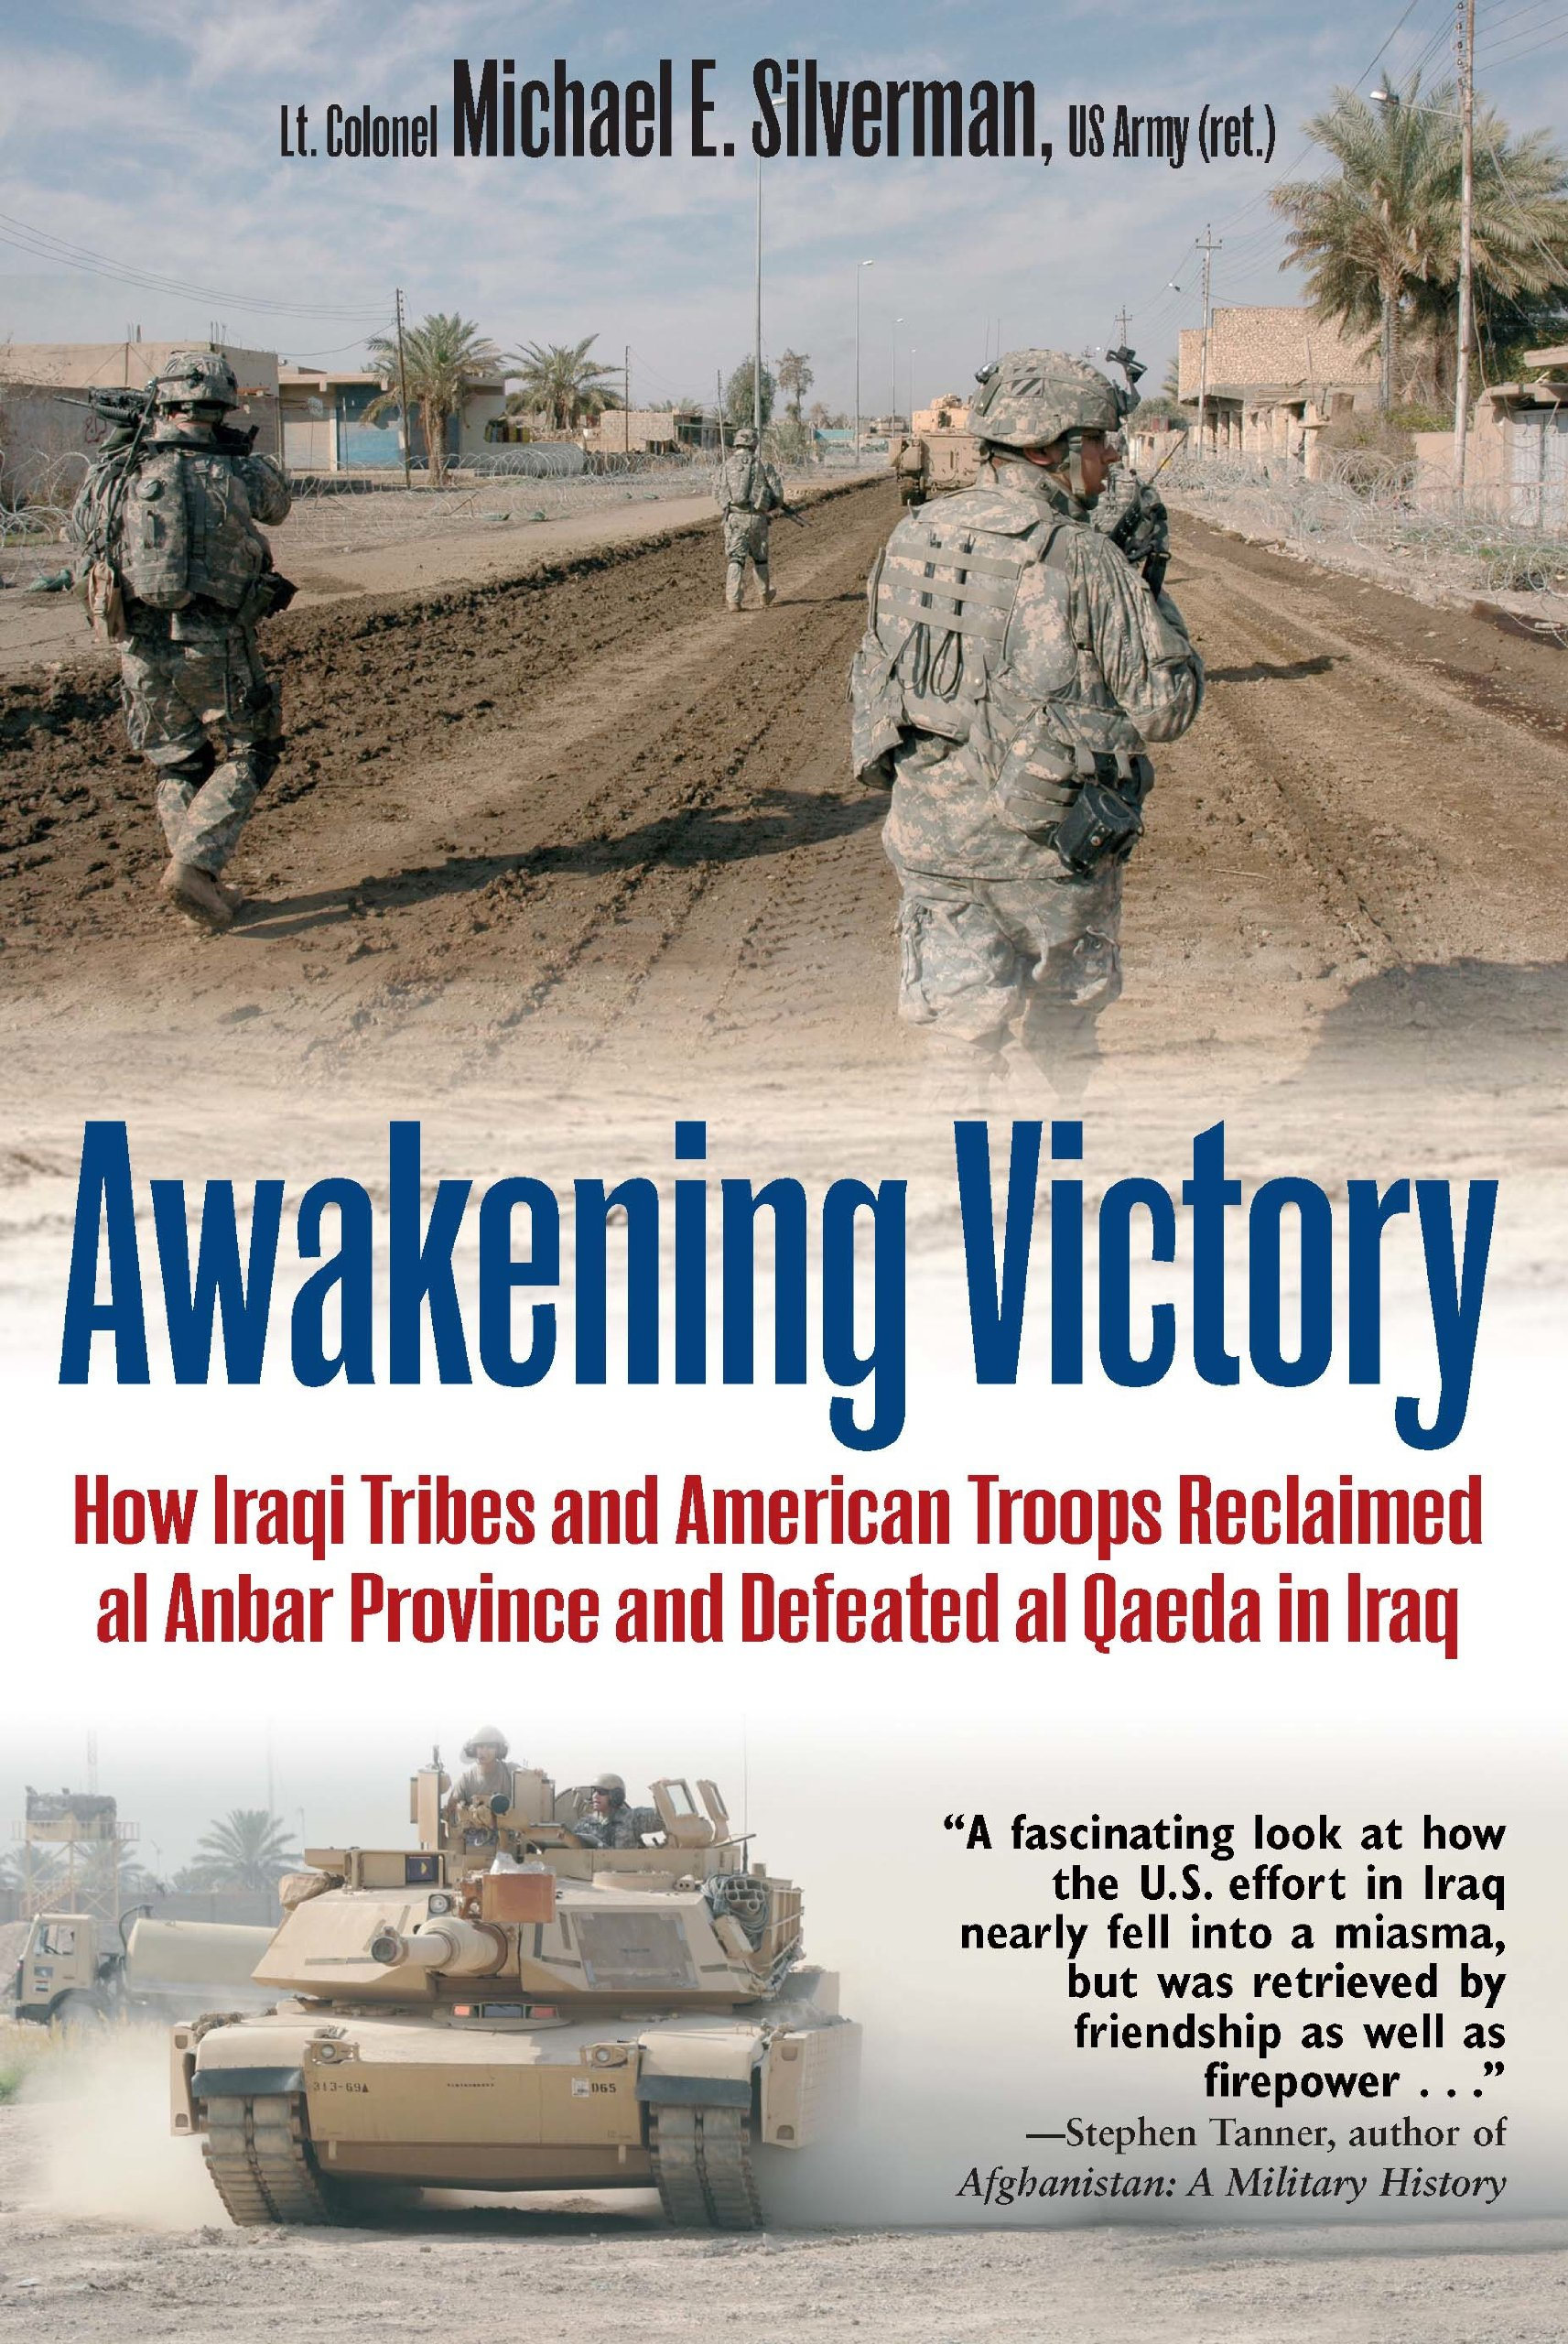 Awakening Victory: How Iraqi Tribes and American Troops Reclaimed Al Anbar and Defeated Al Qaeda in Iraq